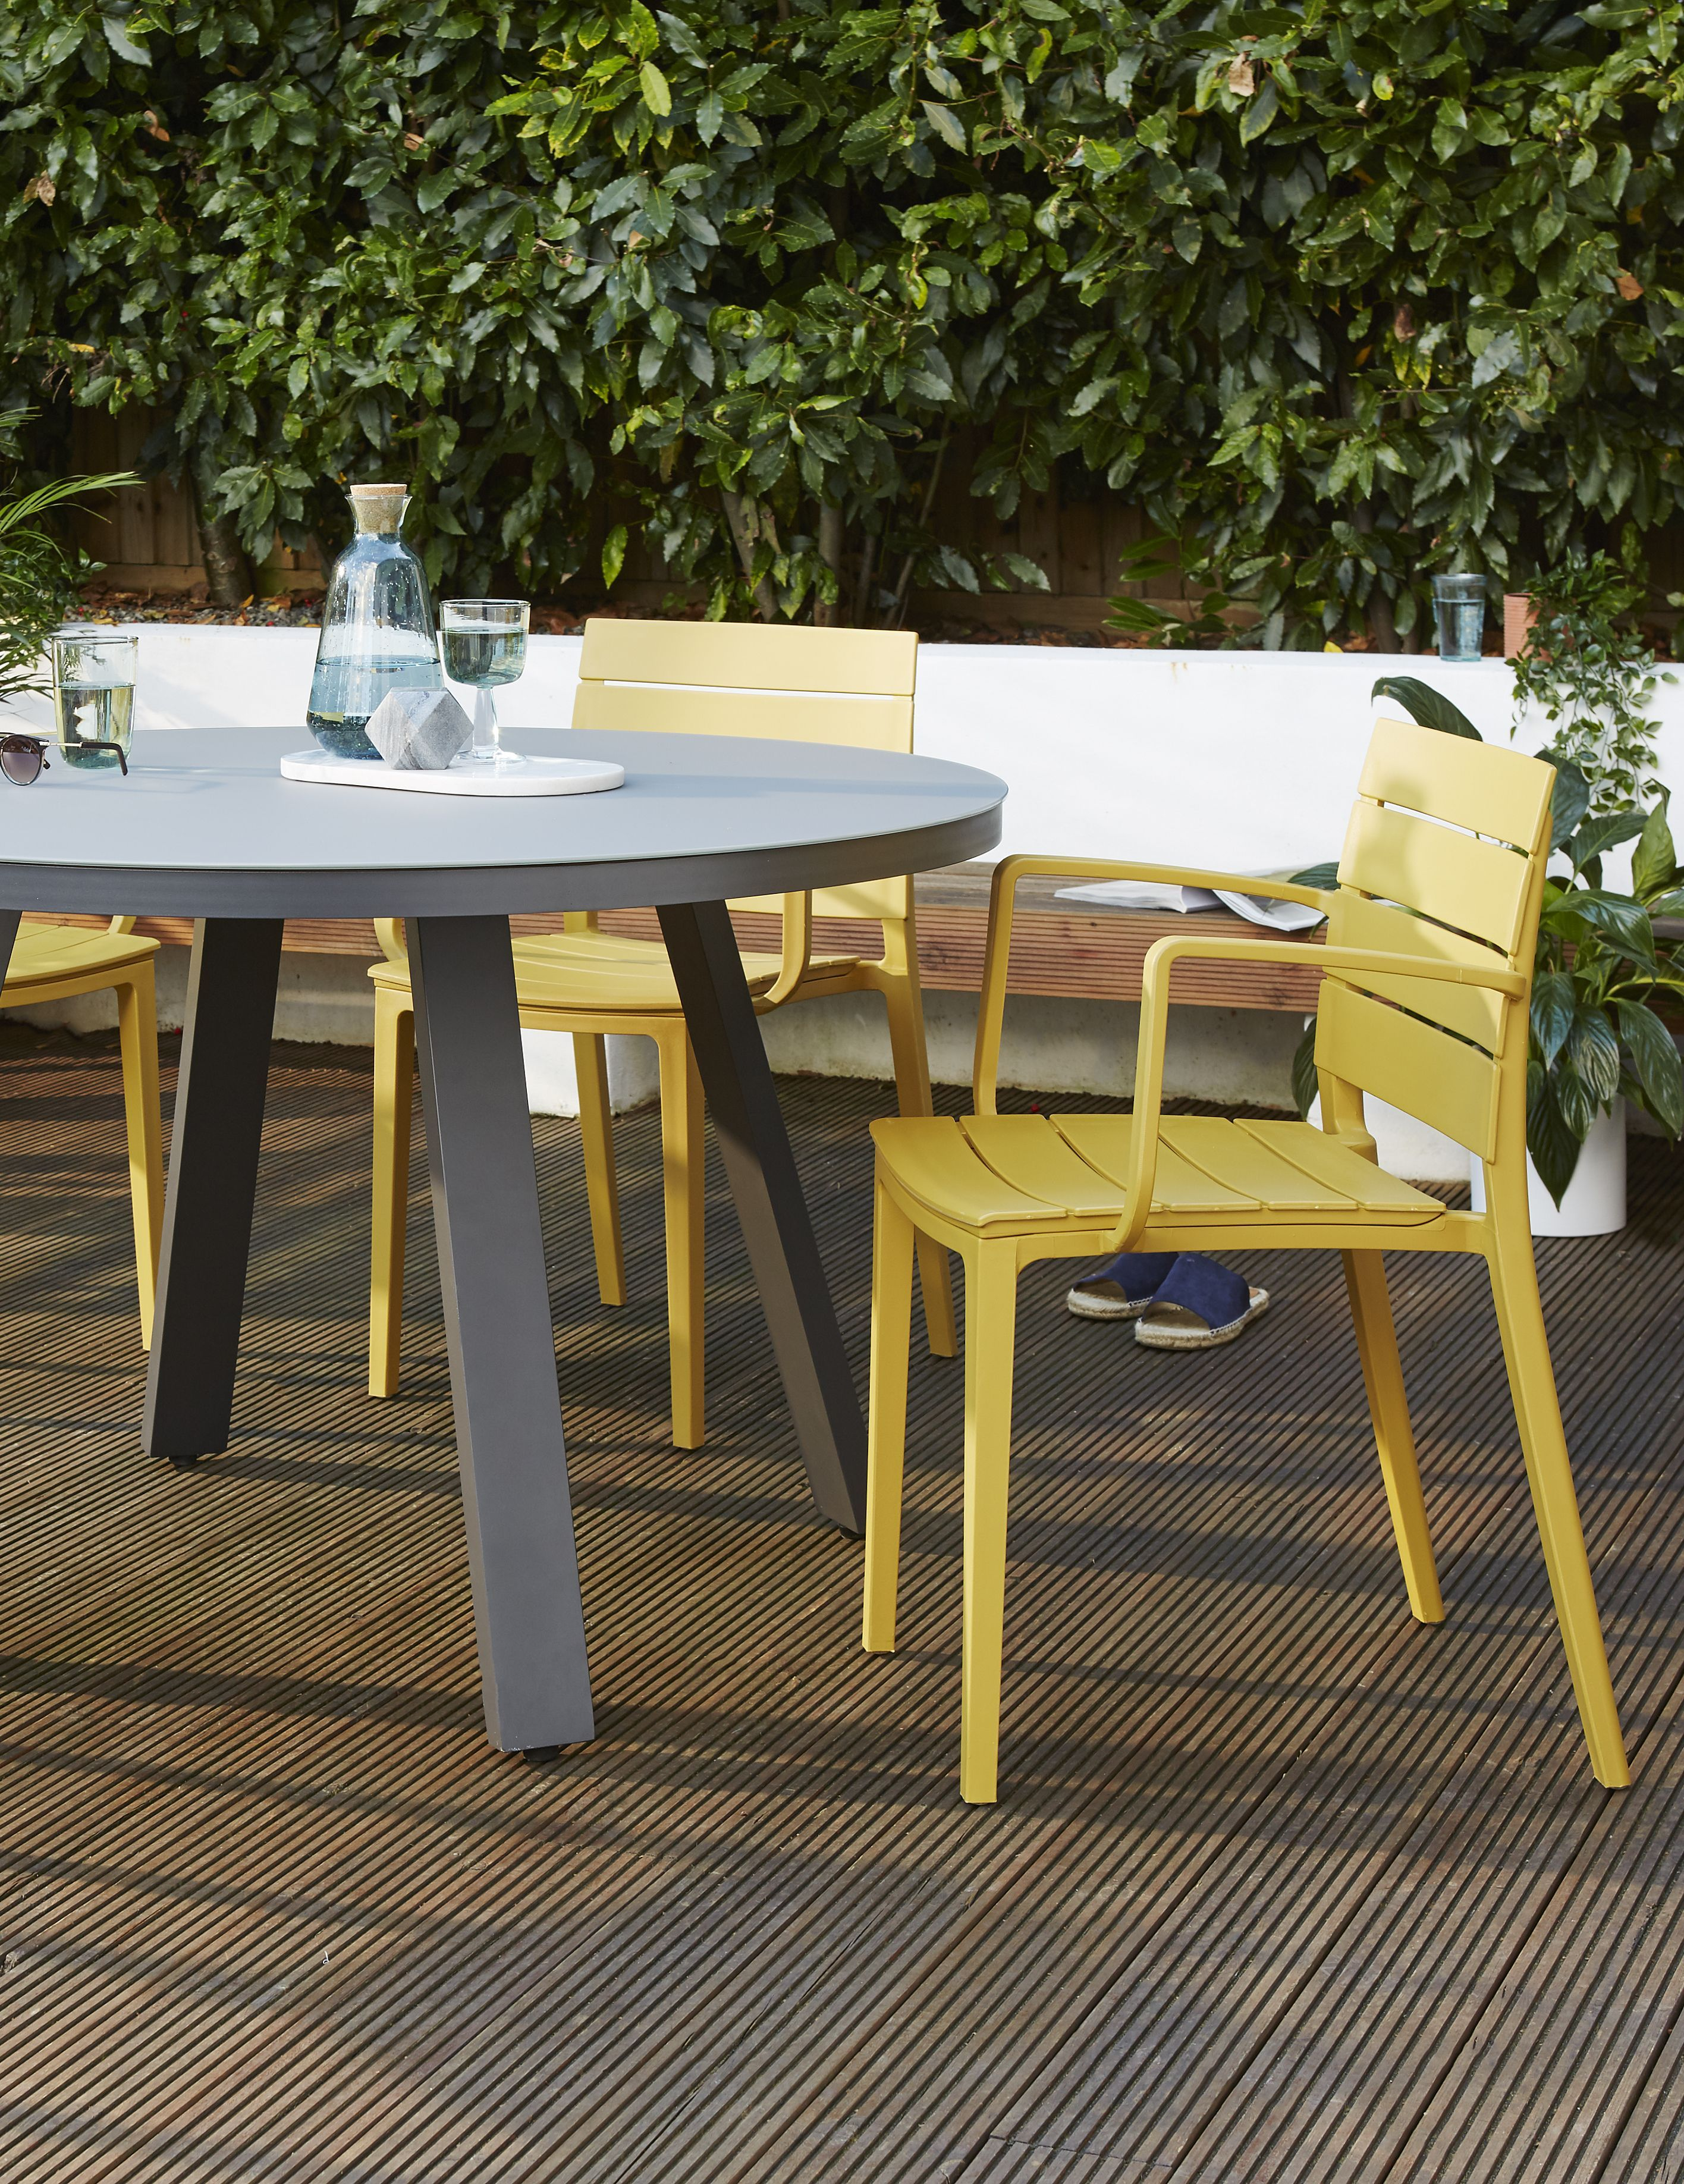 Good Free Garden Table and chairs Ideas We pride ourselves on the